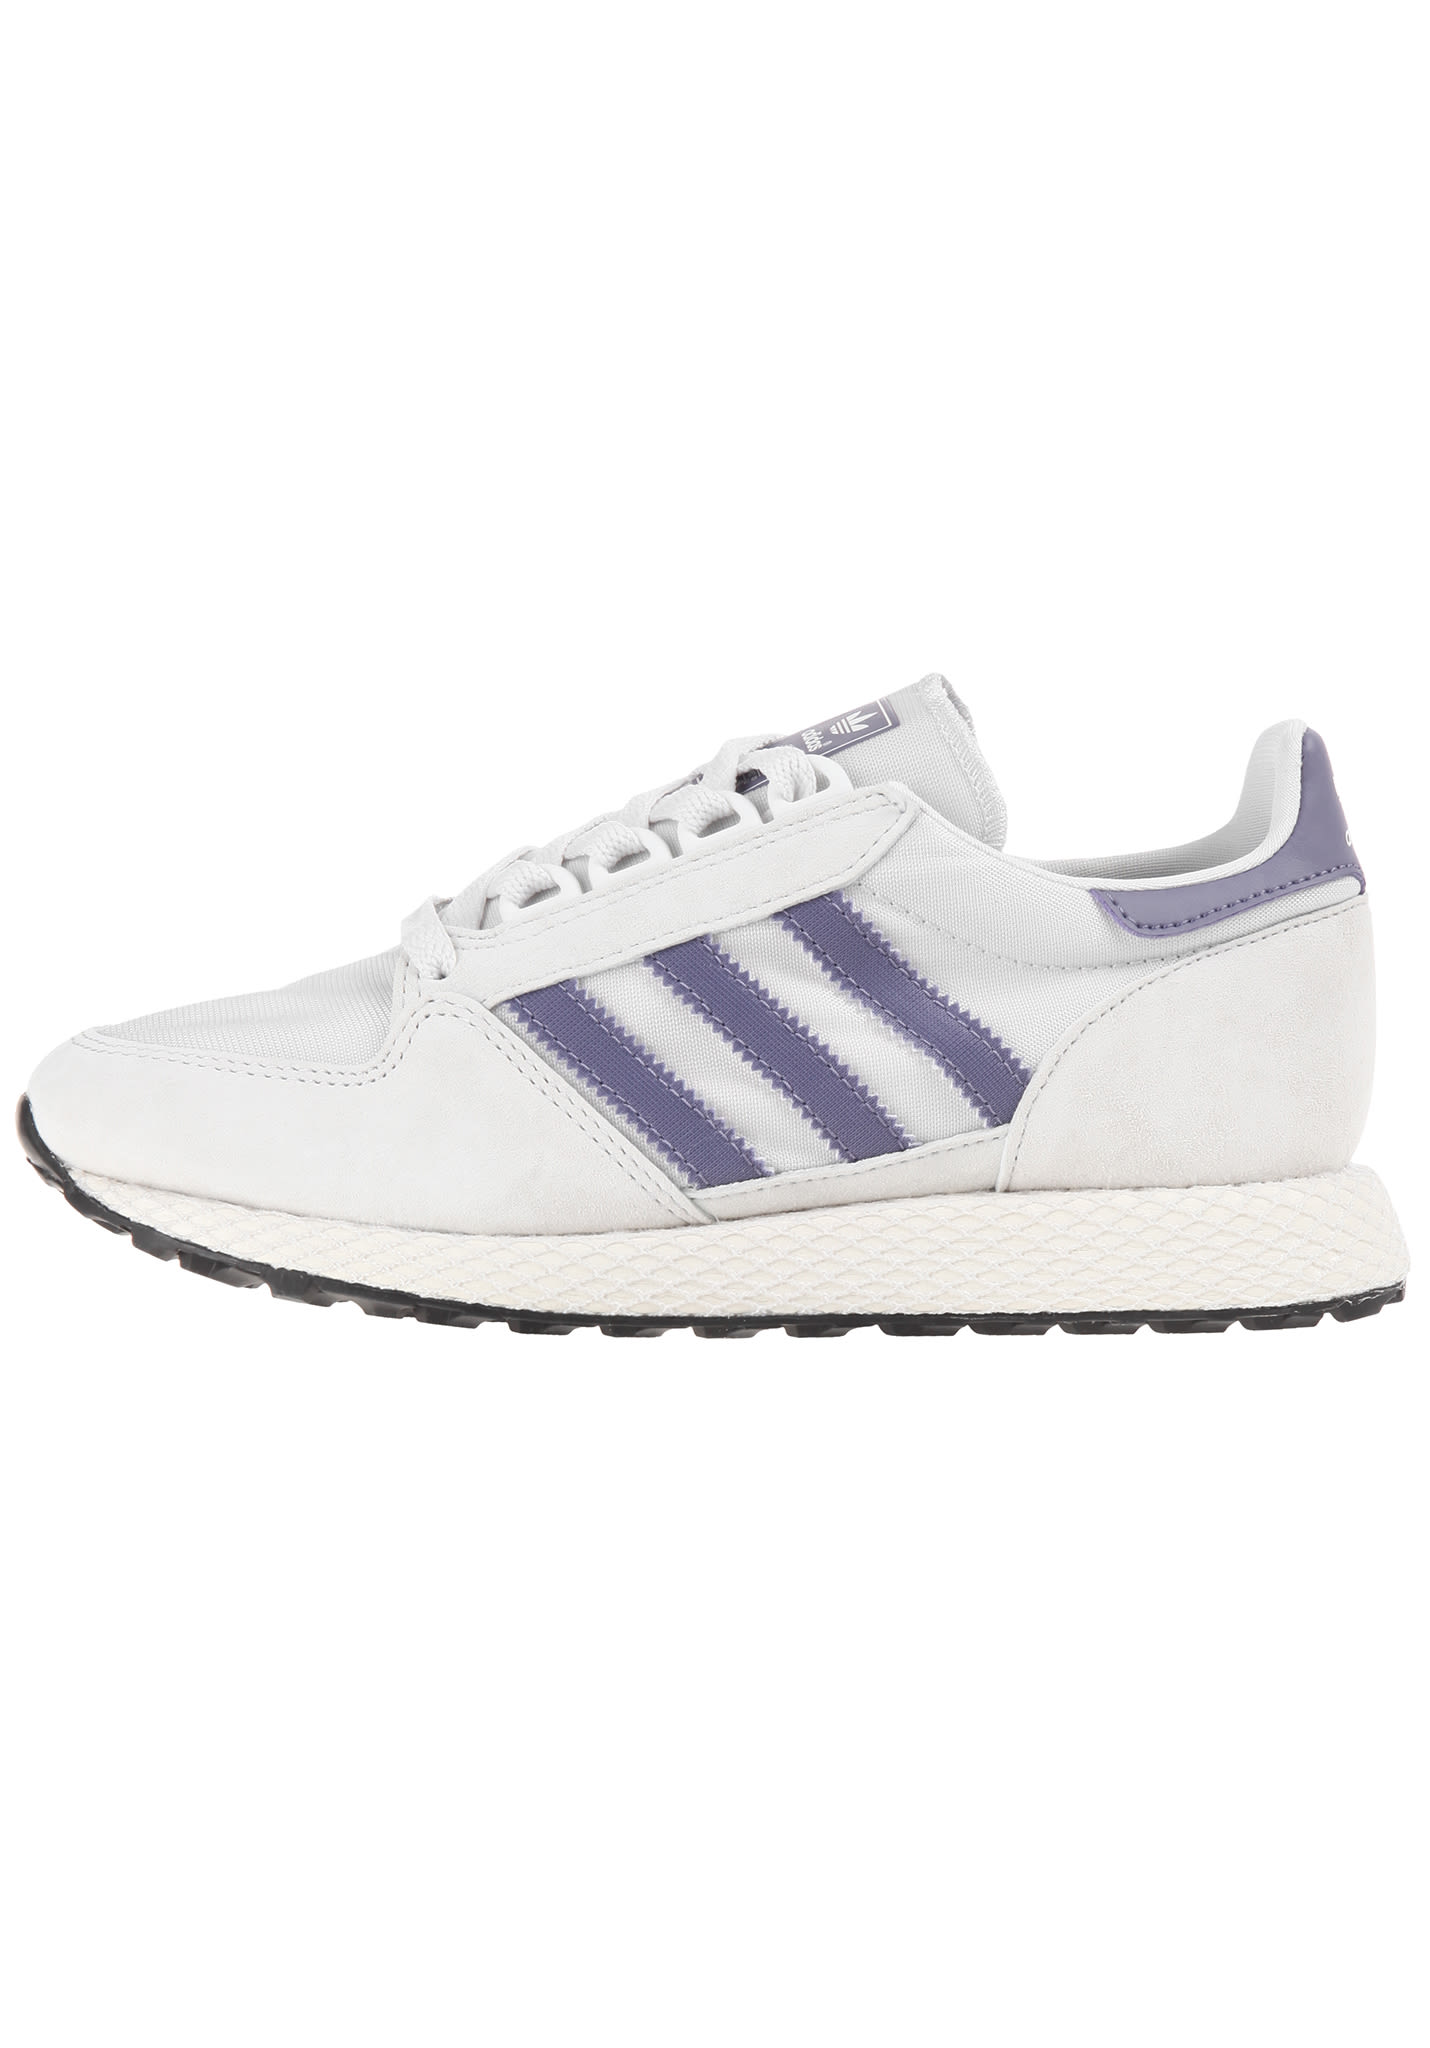 00a4be7f2a2992 ADIDAS ORIGINALS Forest Grove - Sneakers for Women - Beige - Planet Sports